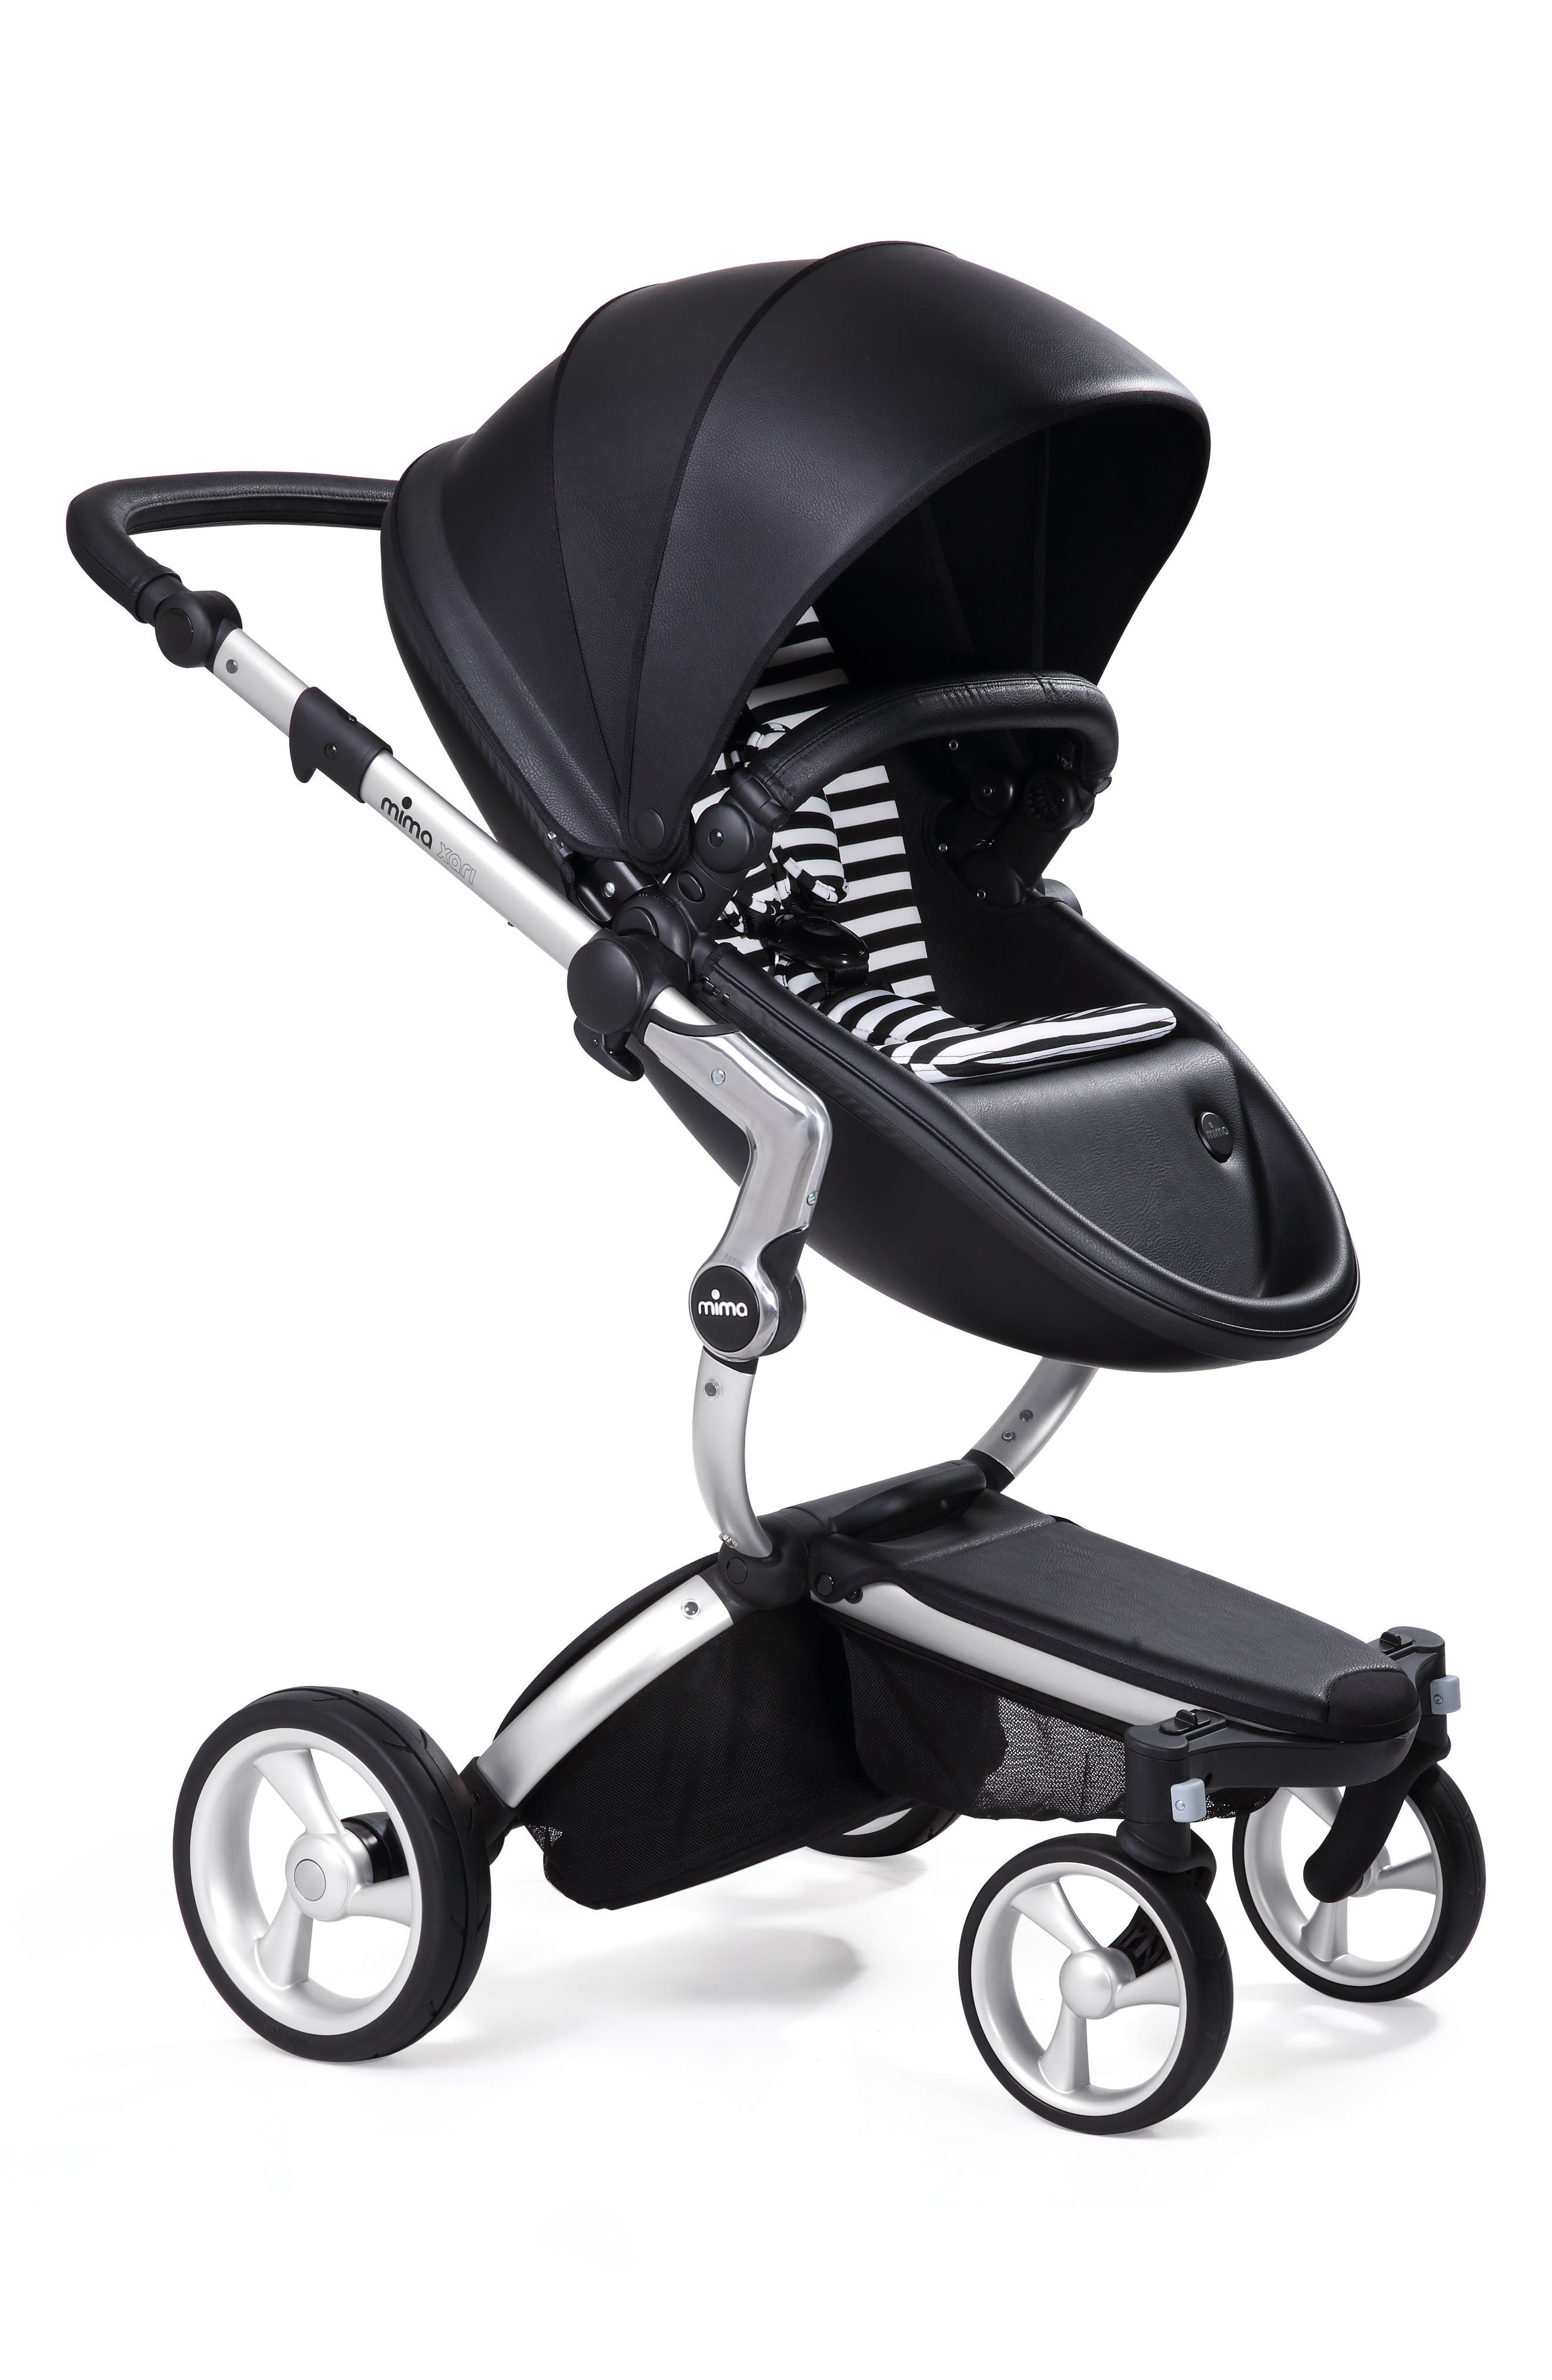 Xari Aluminum Chassis Stroller with Reversible Reclining Seat & Carrycot,                         Main,                         color, Black / Black And White